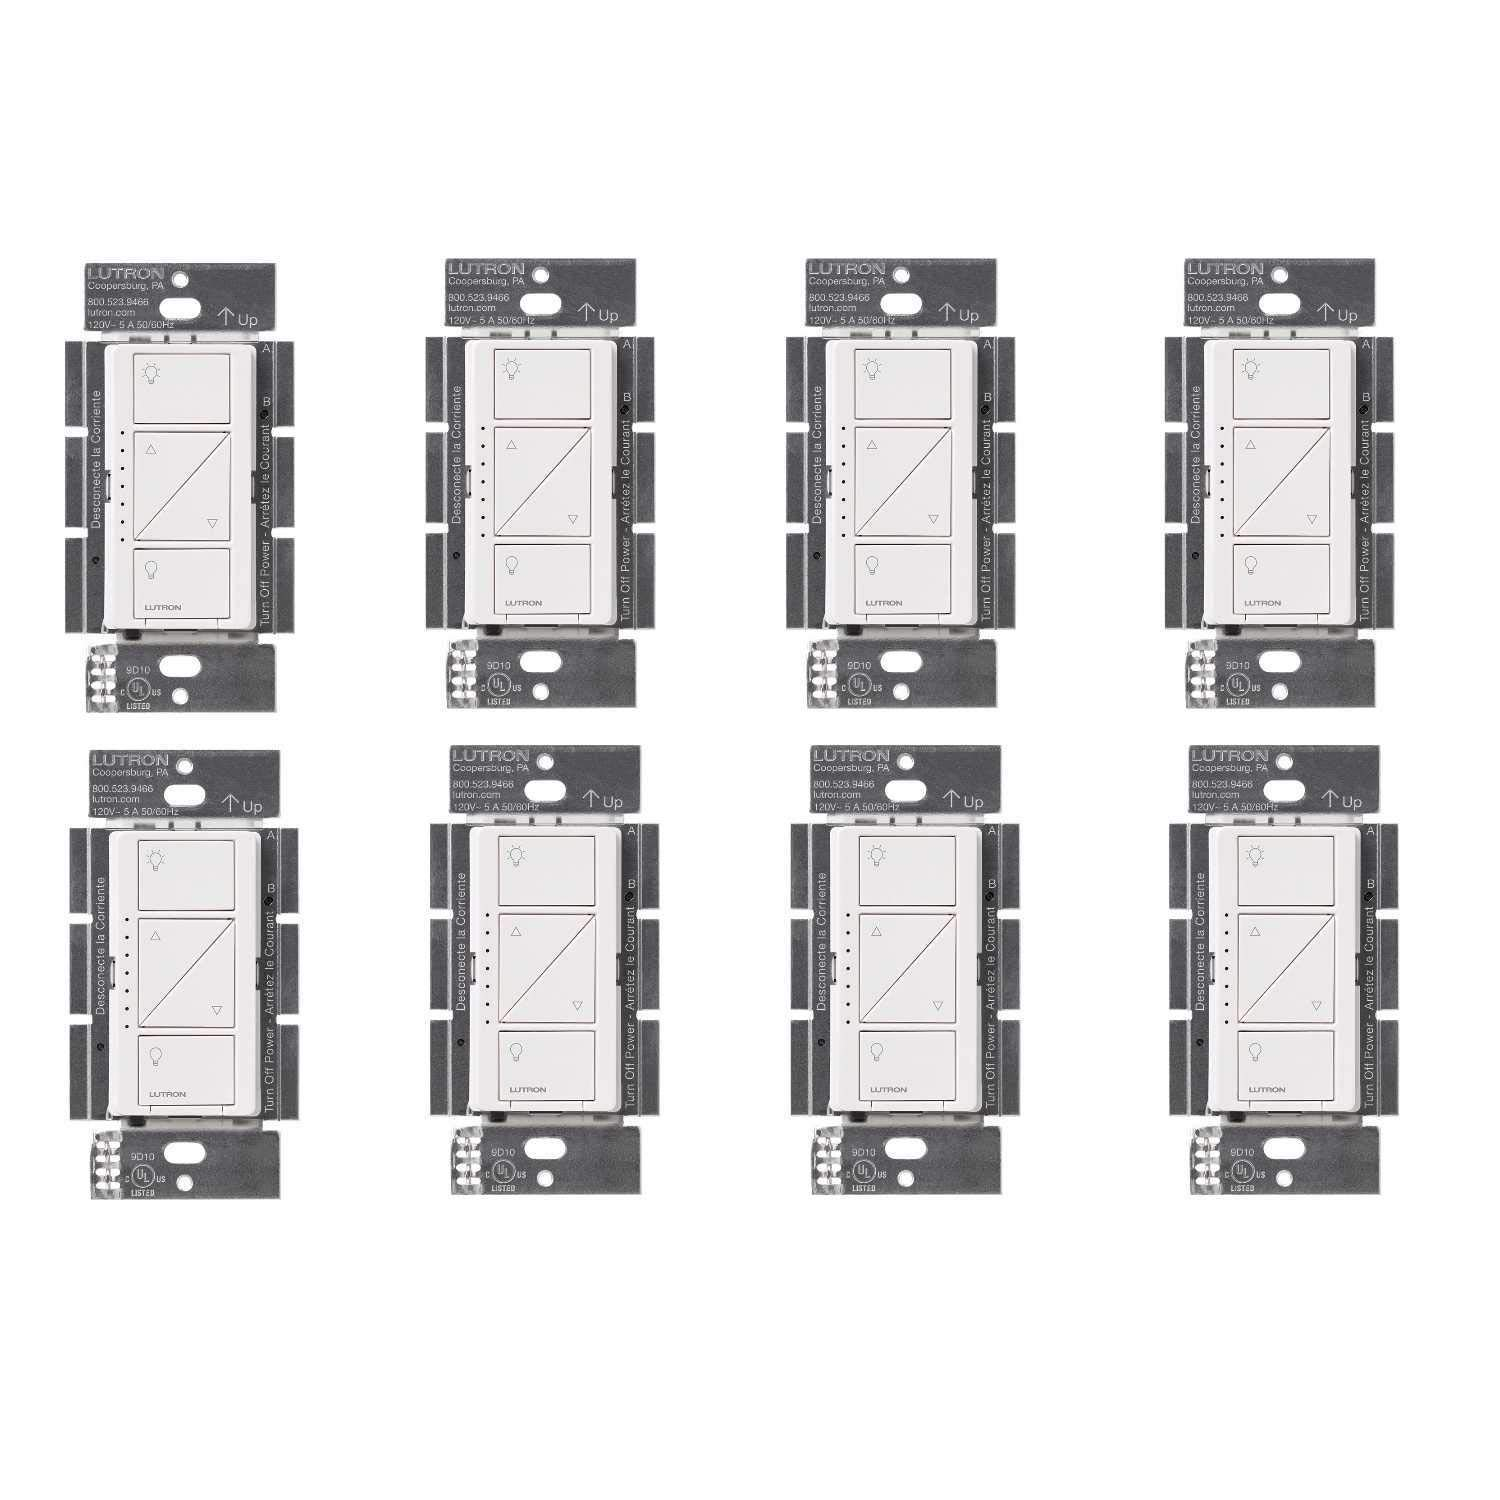 Lutron PD-6WCL-WH Caseta Wireless Smart Lighting Dimmer Switch, White (8 Pack) - - Amazon.com